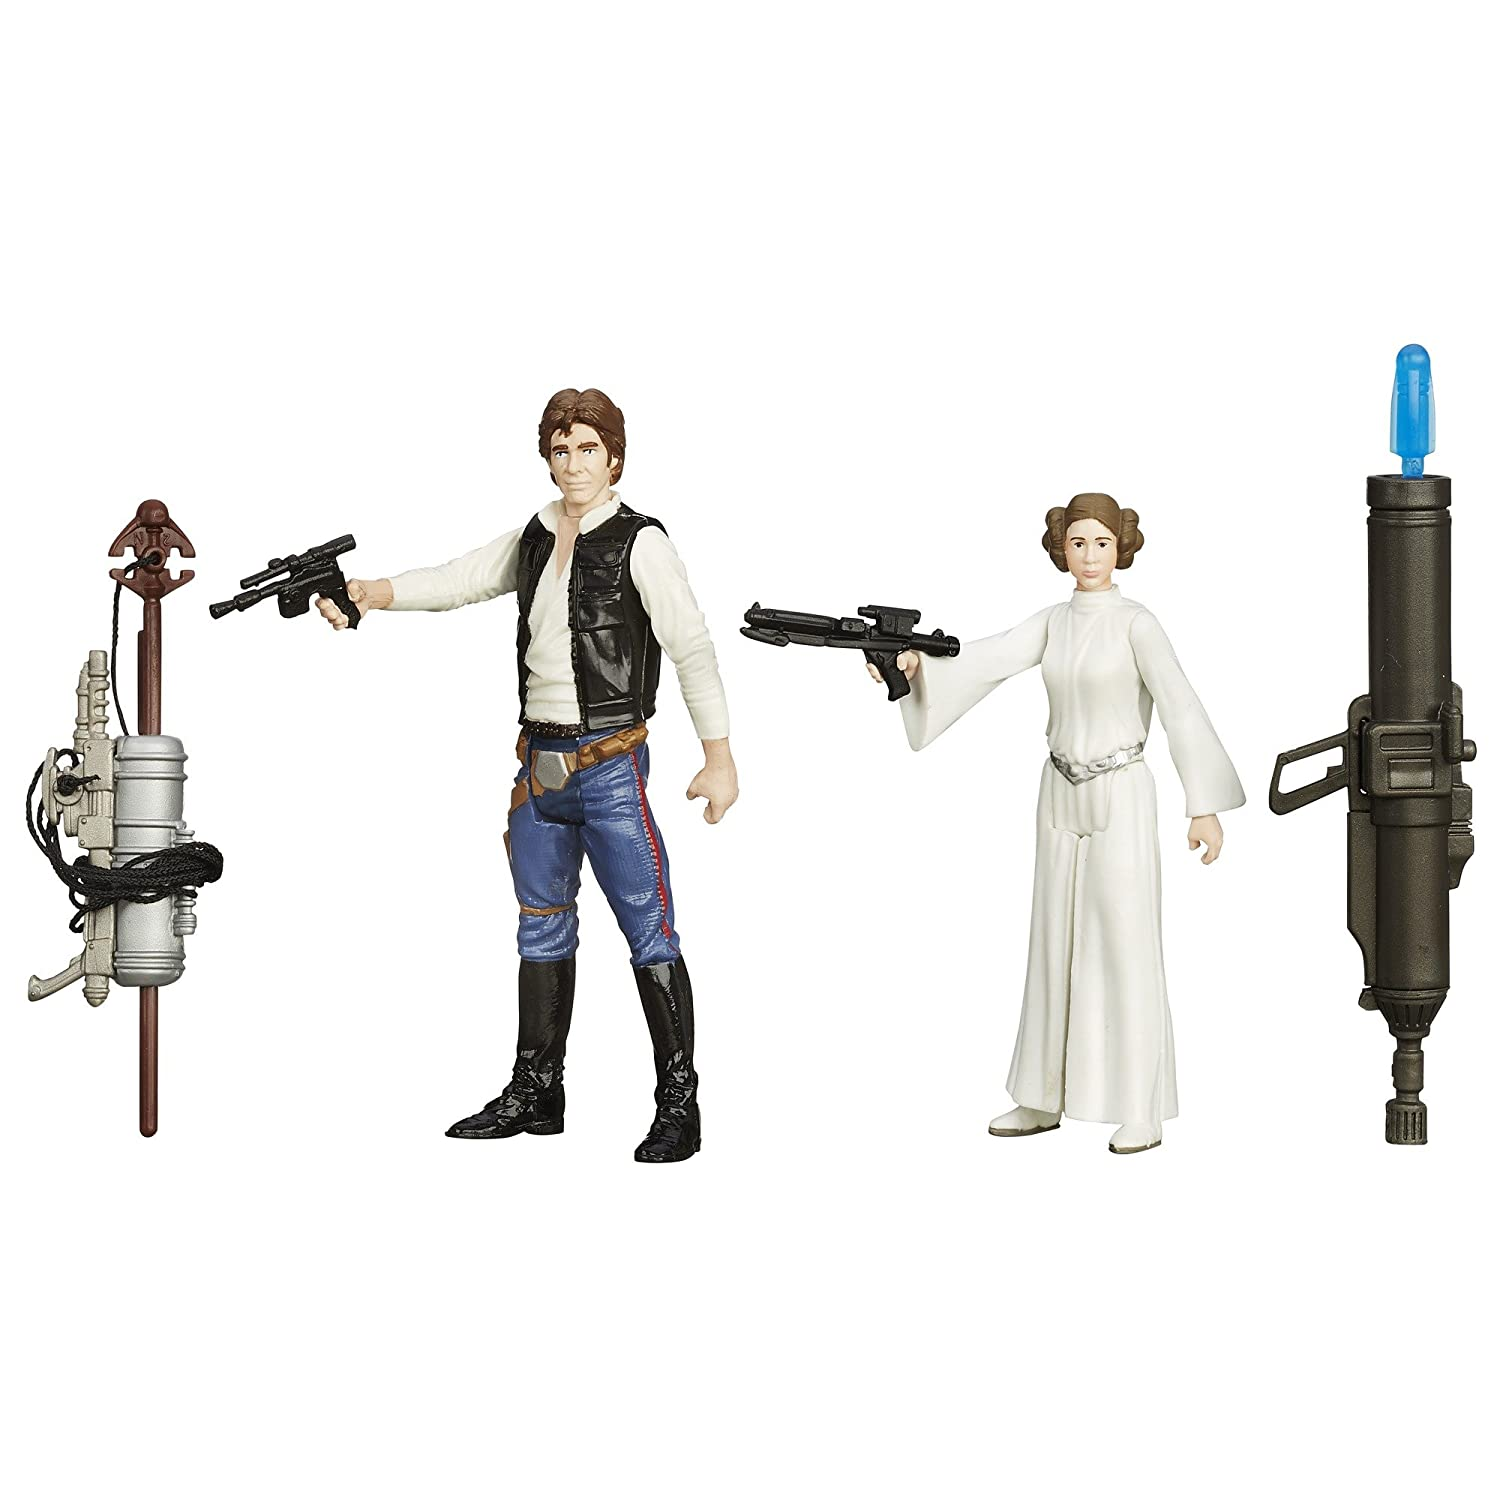 Star Wars A New Hope 3.75-inch Space Mission Han Solo And Princess Leia Figure